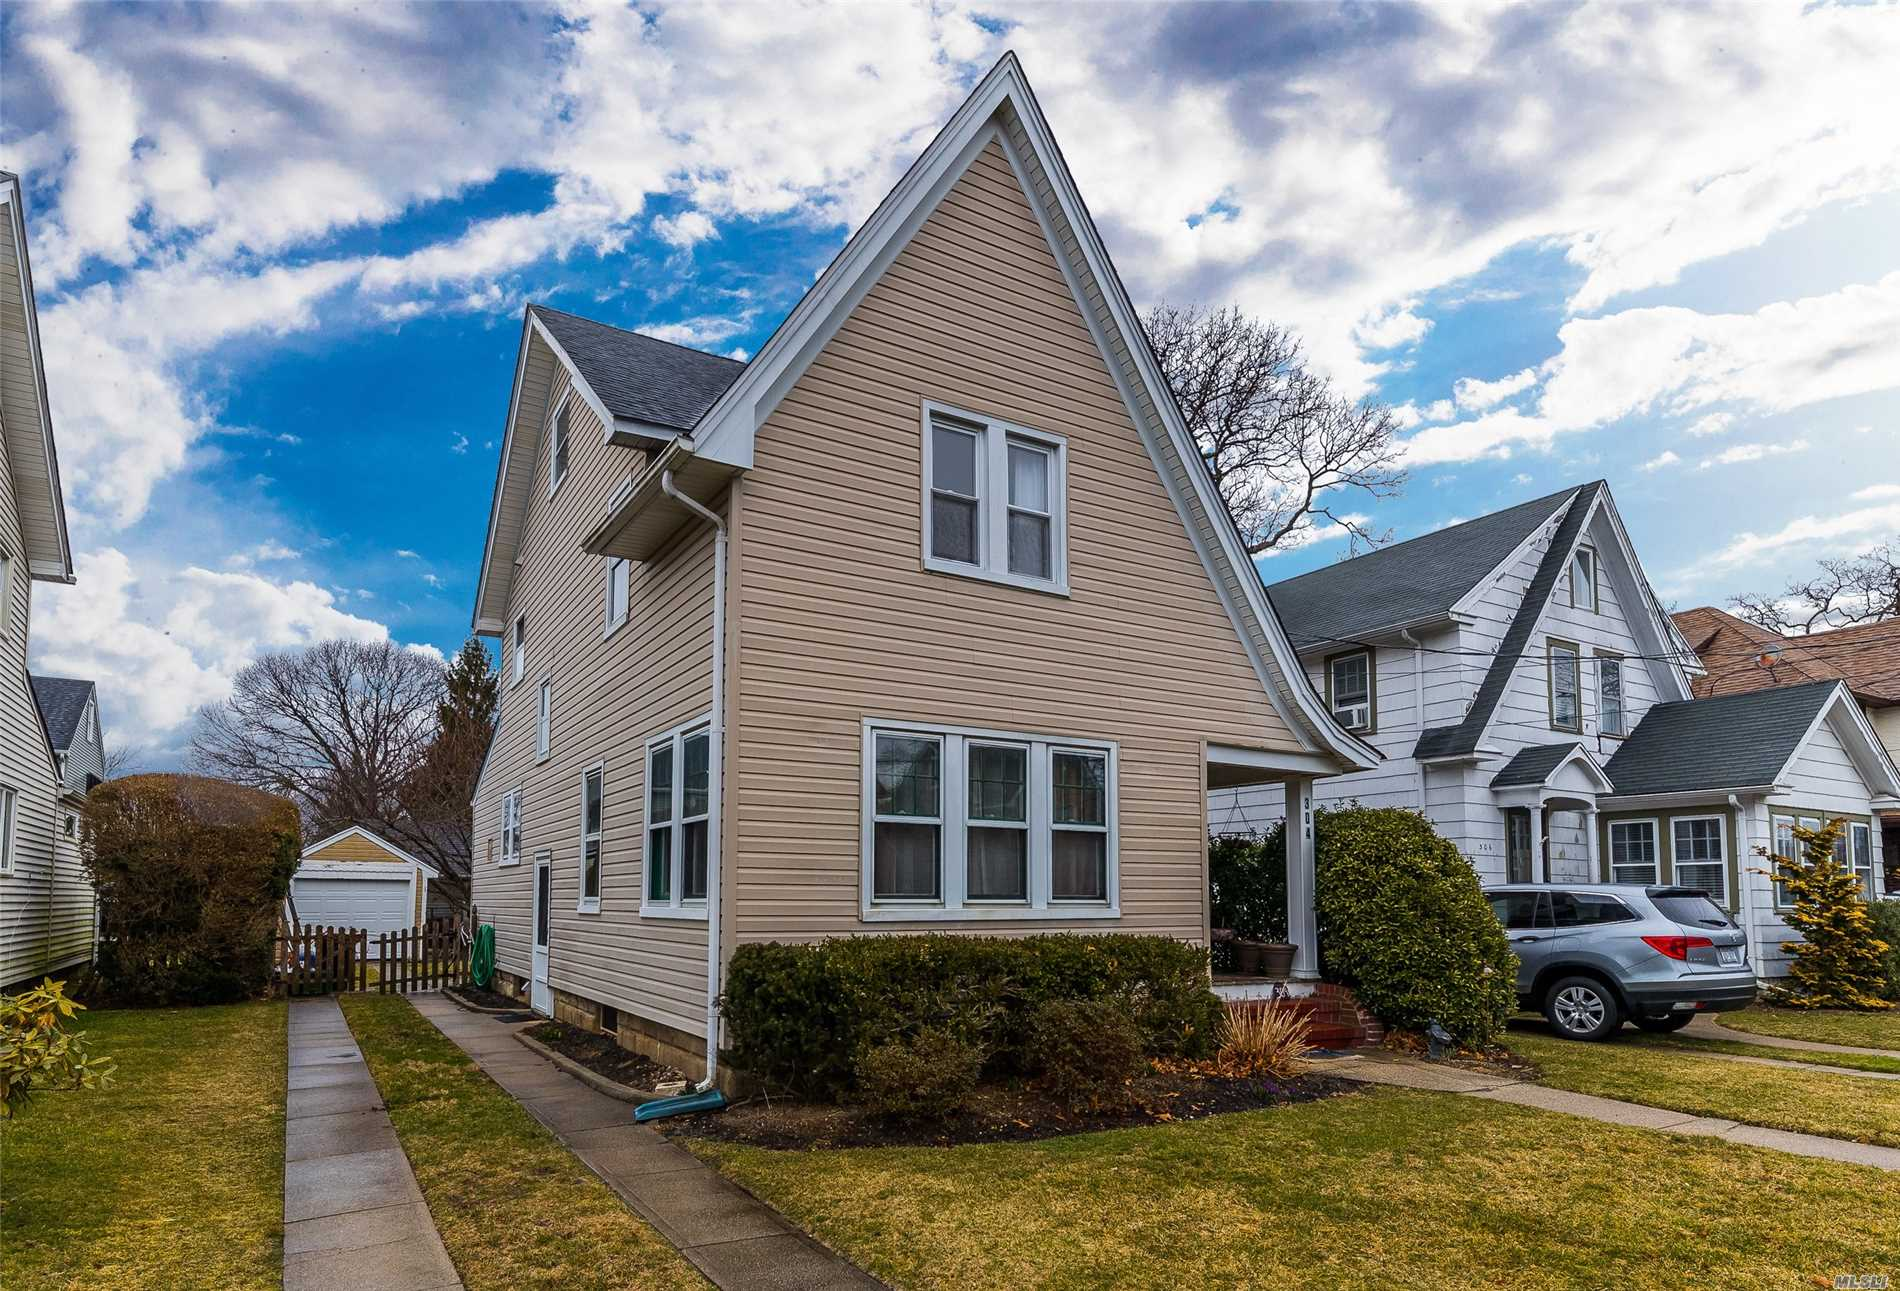 Charming Side Hall Colonial Offering a Living Room With Fireplace, Formal Dining Room, Eat-In Kitchen leading to a Deck with a Nice Yard, 3 Bedrooms, Formal Dining Room, Den, Walk-Up Attic, Basement with New Gas Boiler and Hot Water Heater.